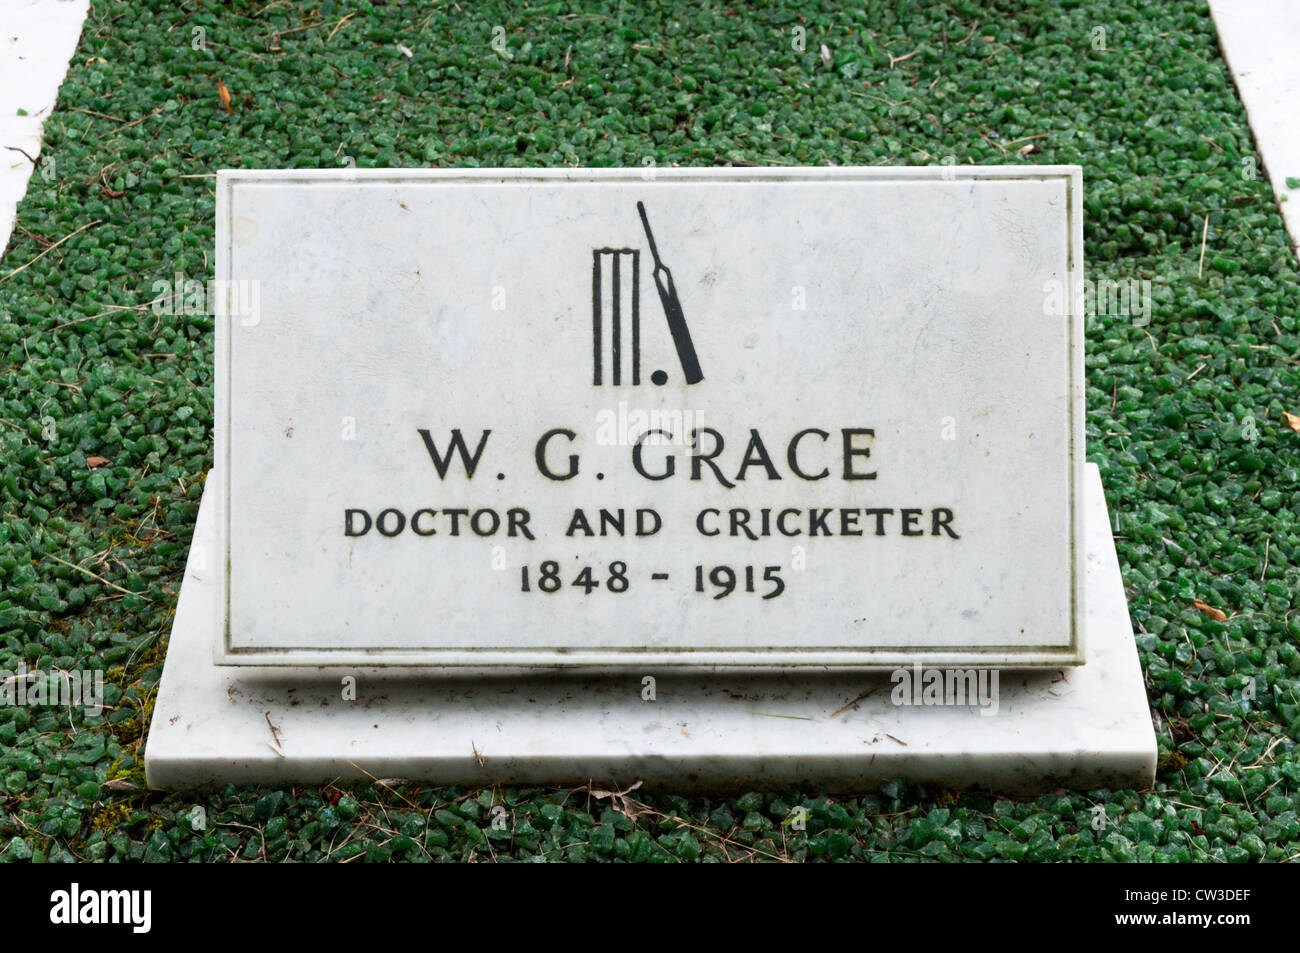 The grave of W G Grace, Doctor and Cricketer in Beckenham Cemetery, South London. - Stock Image